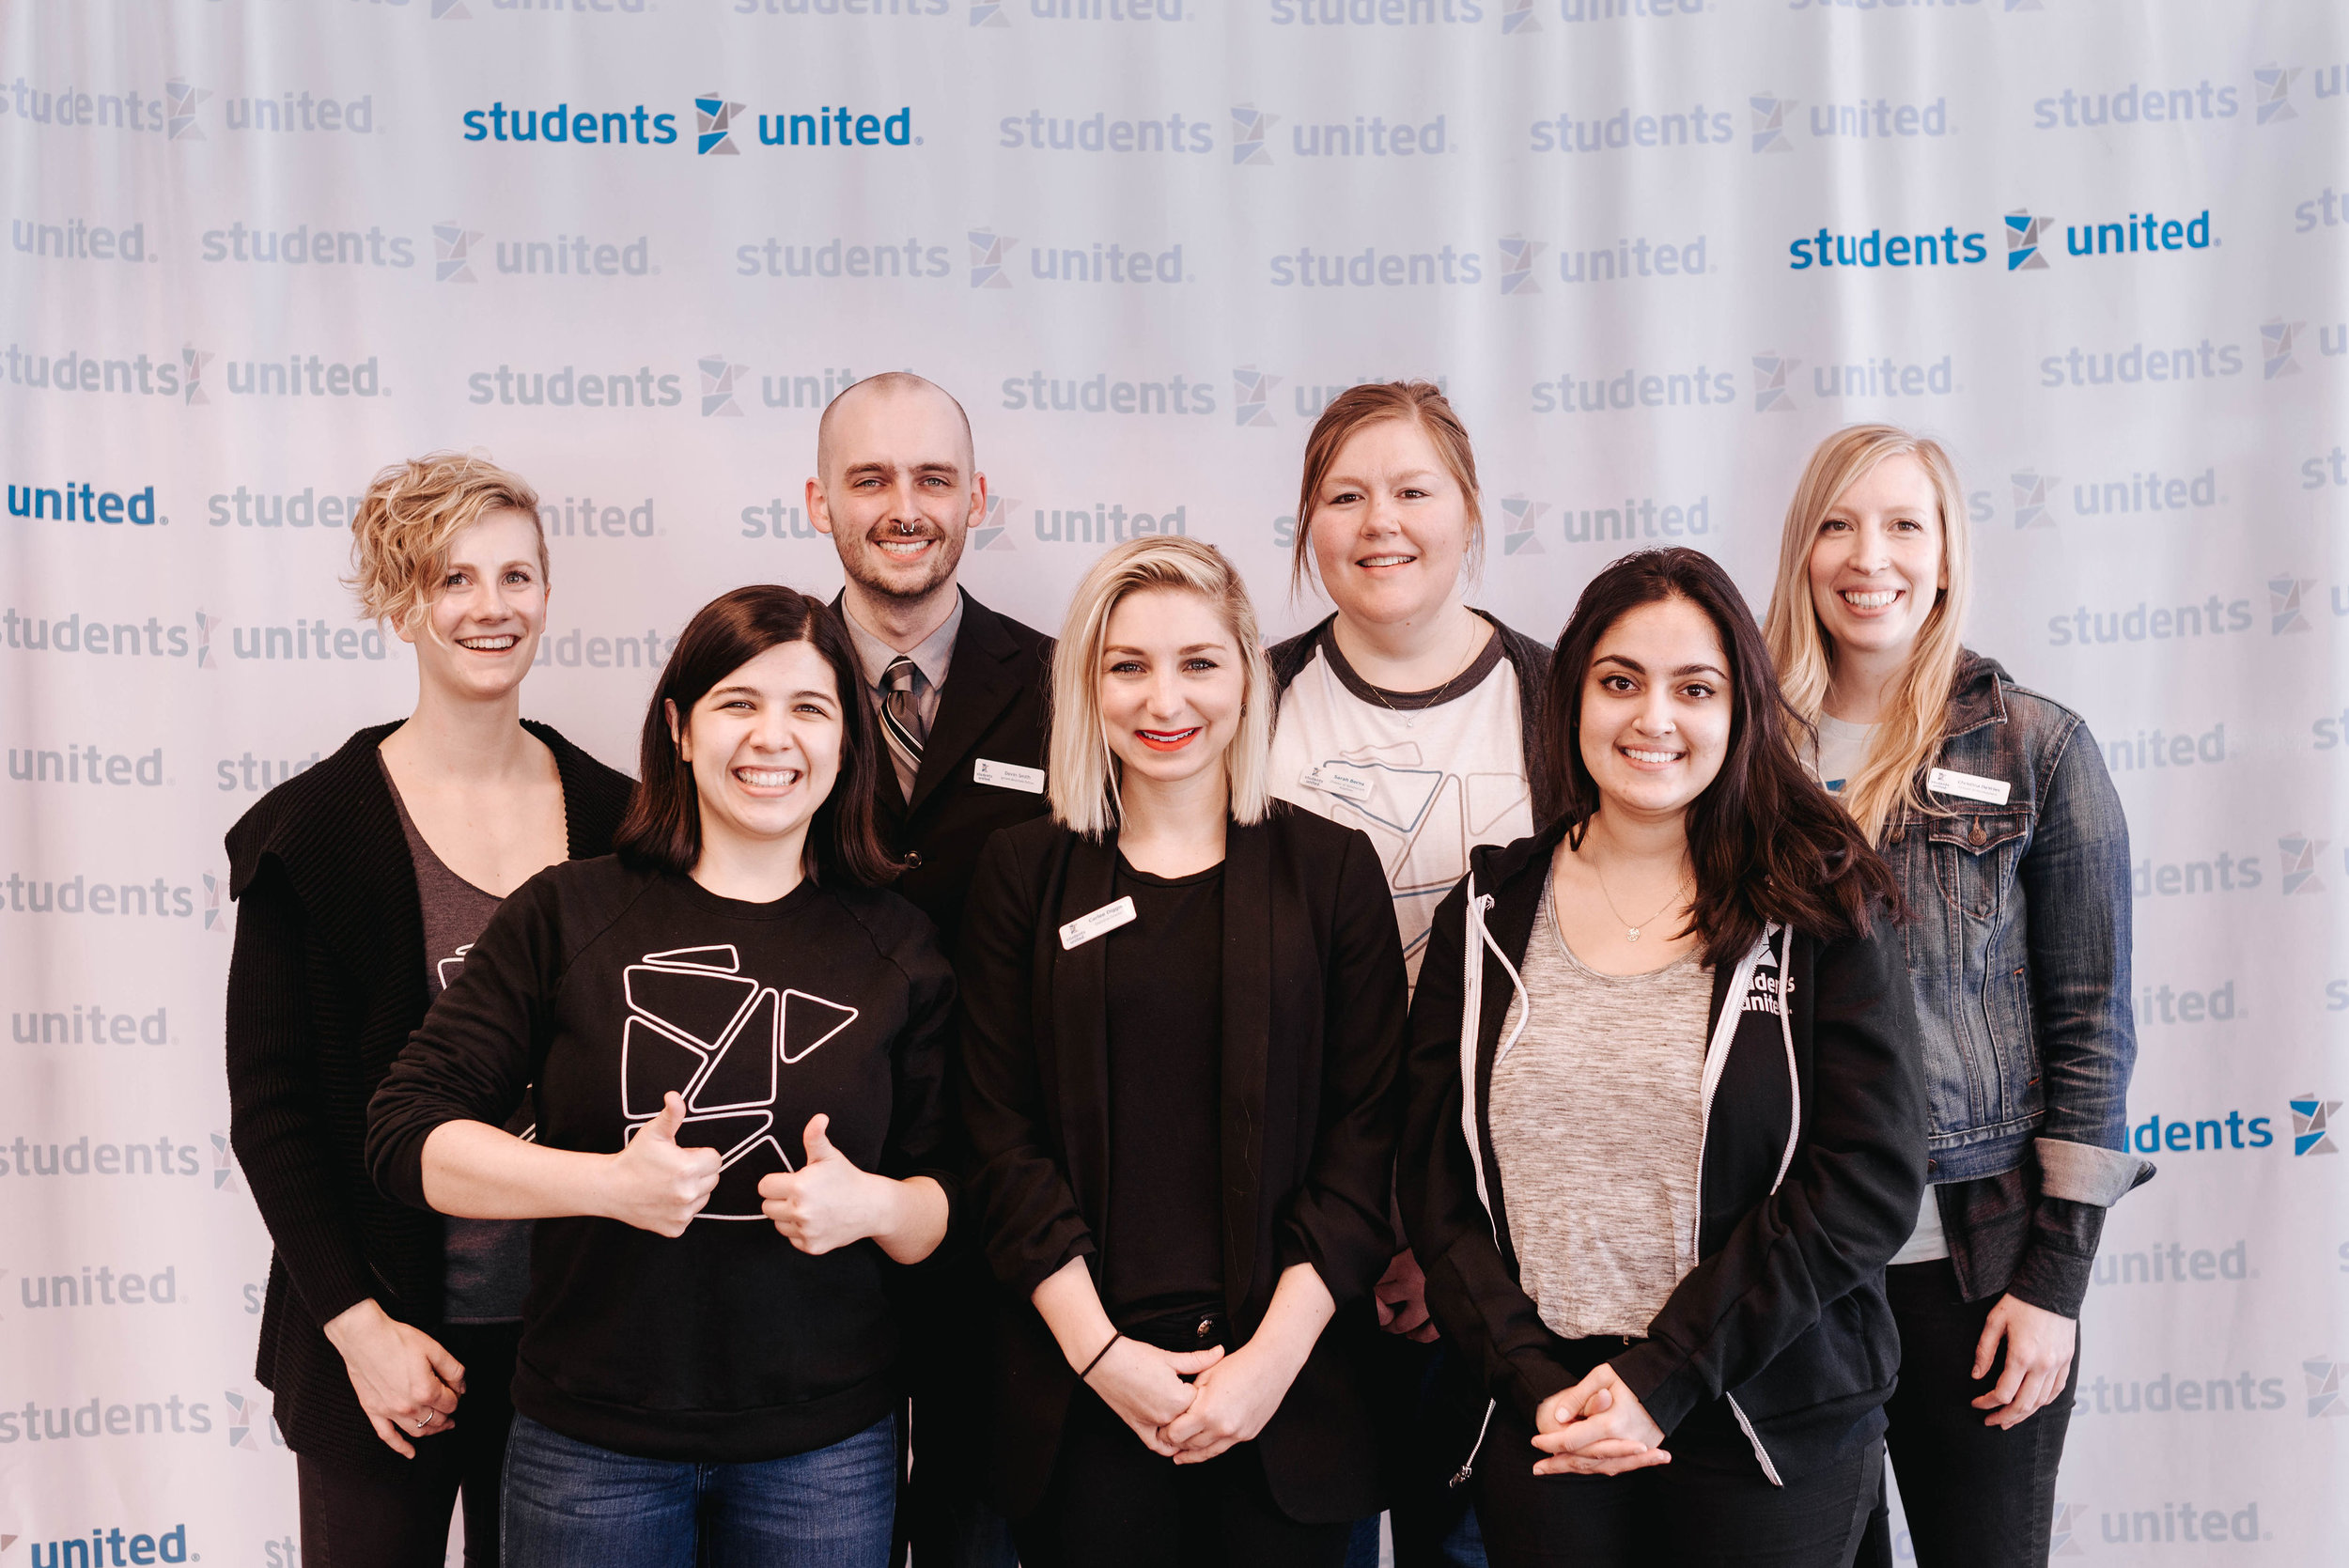 Students United staff in February 2019